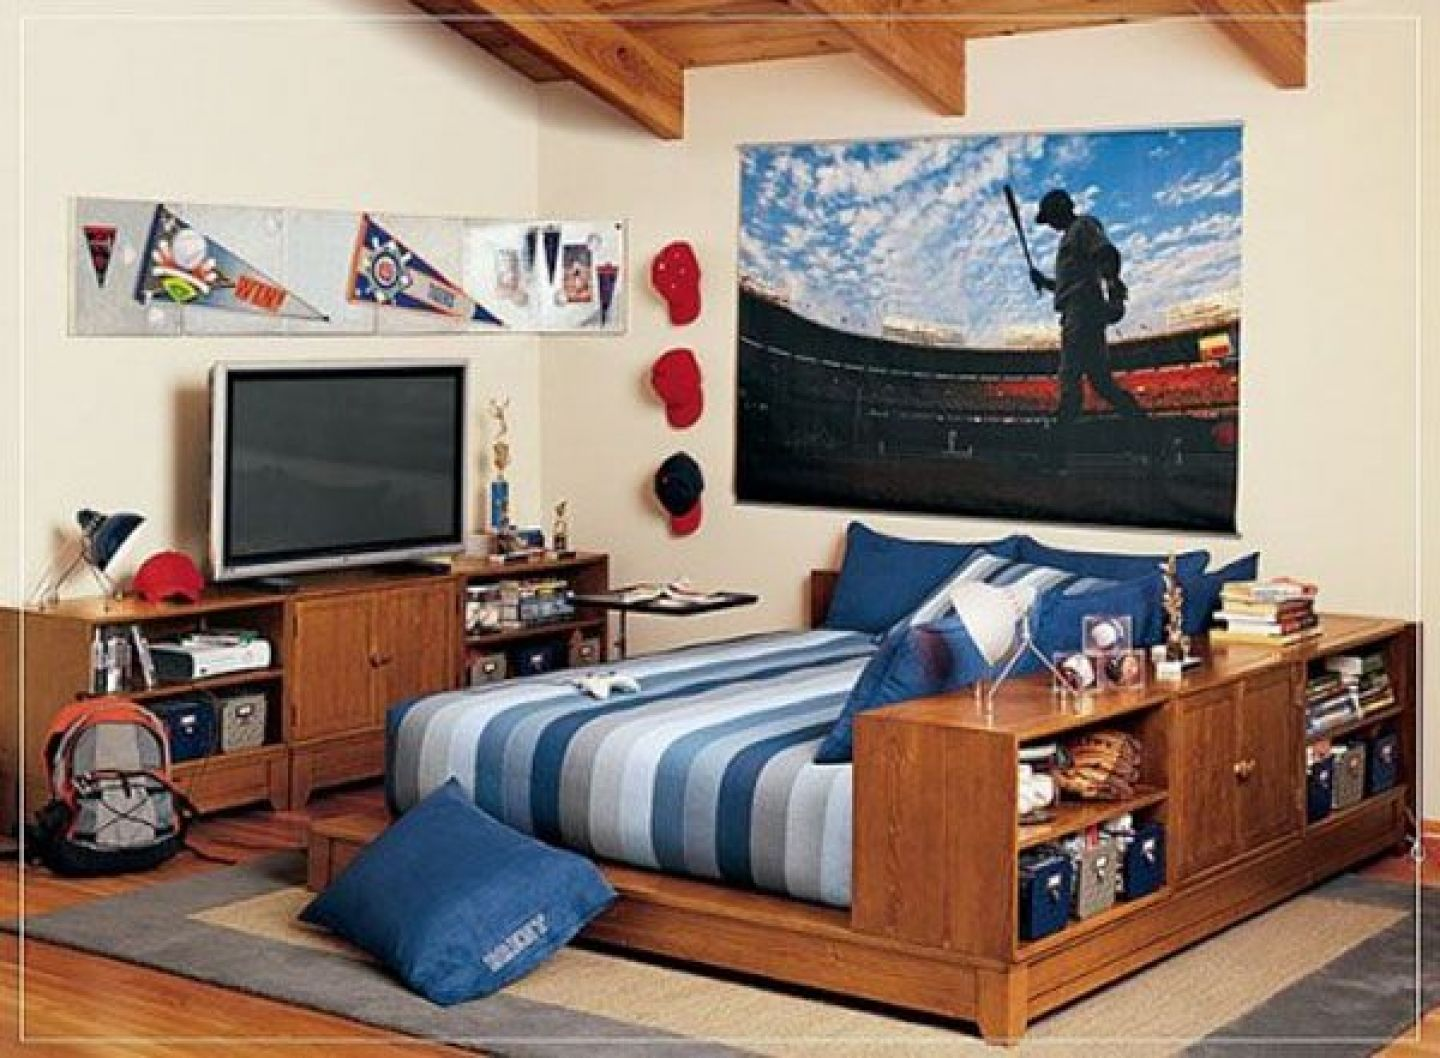 Teenage boys bedroom ideas - Teen Boy Bedroom Ideas 5